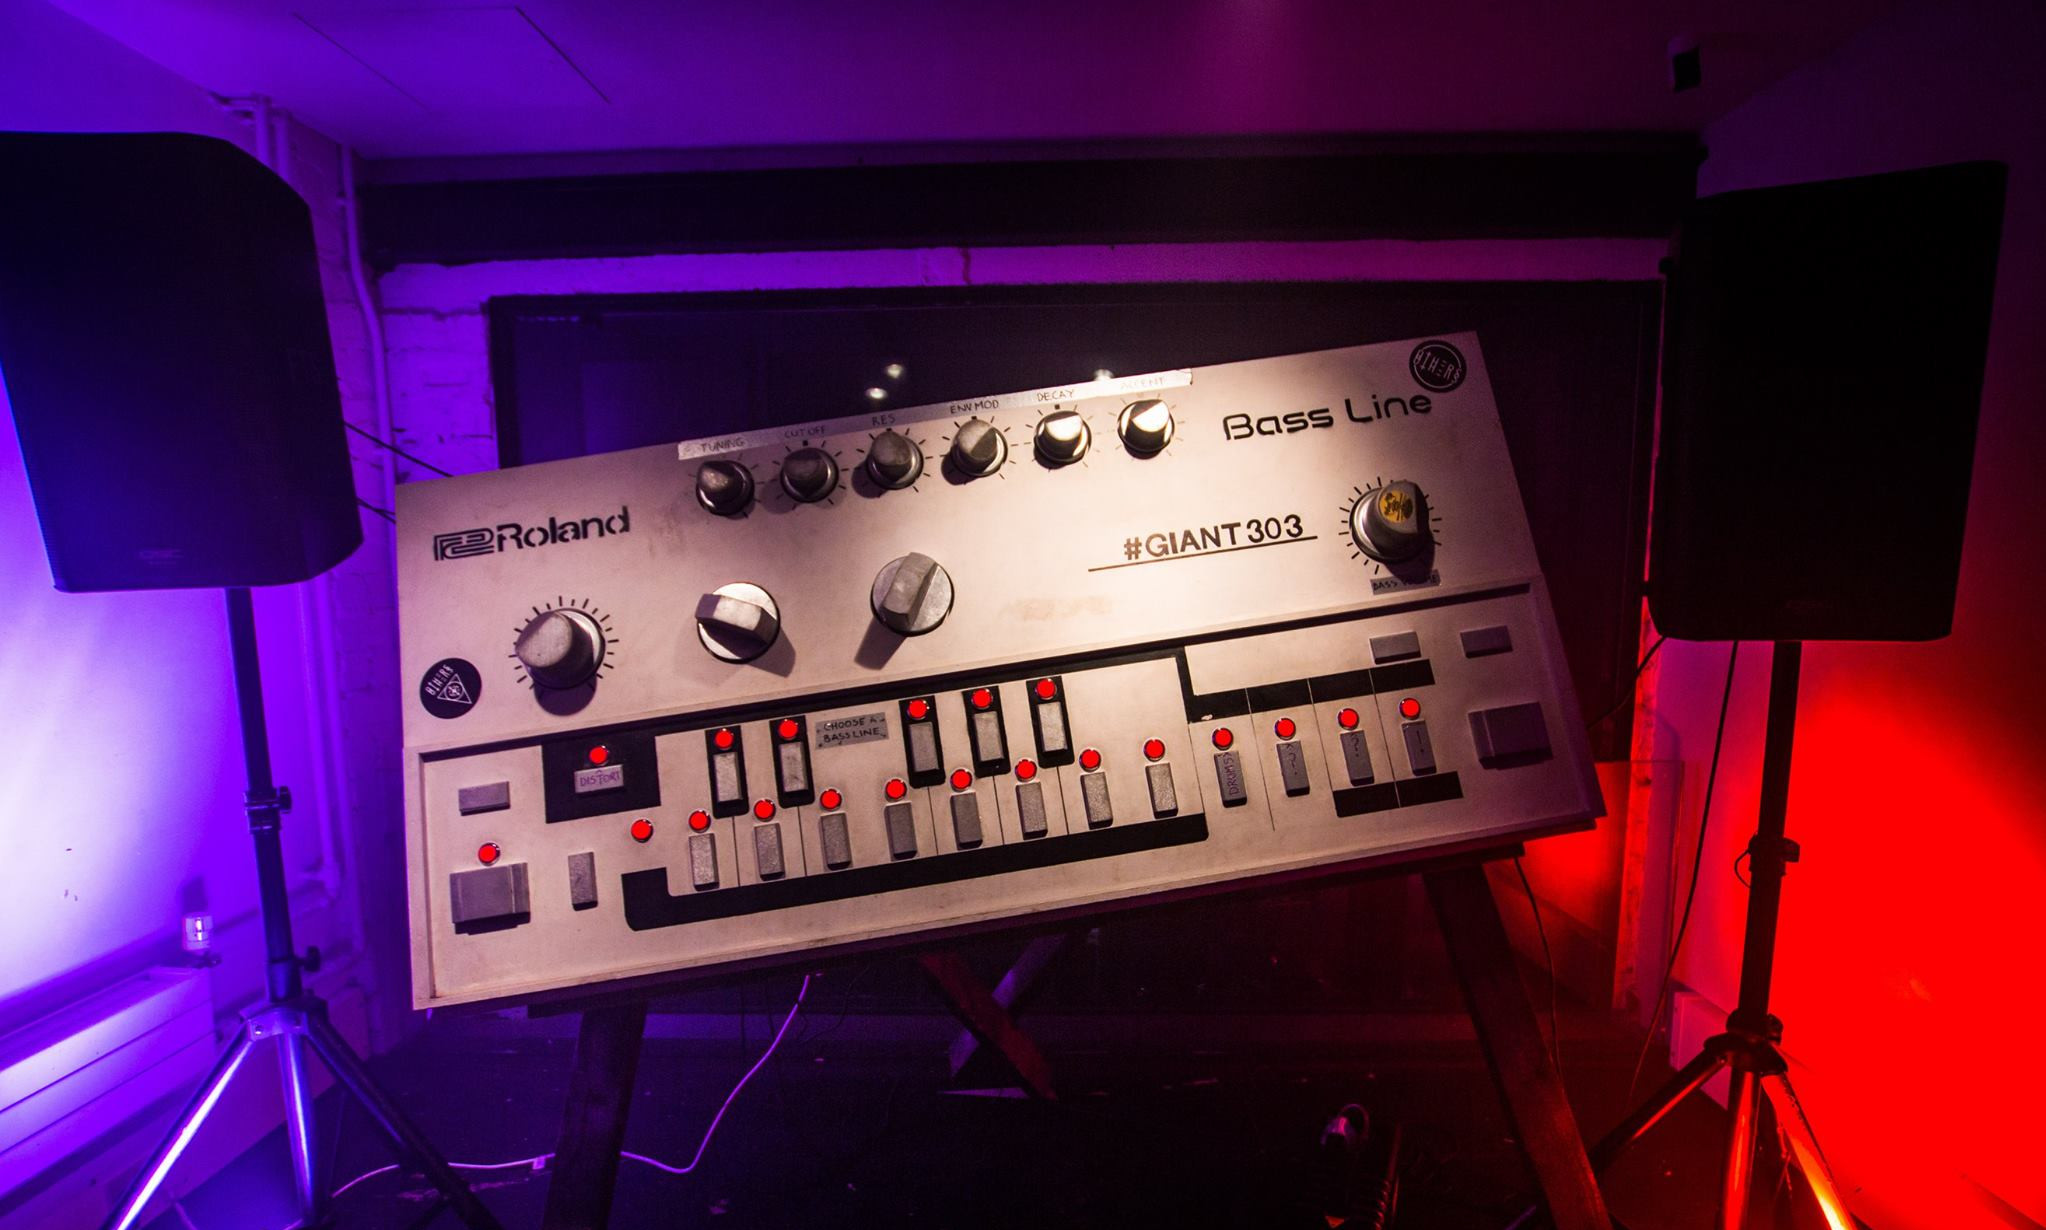 The Giant Roland 303, photo taken by Martin Windebank